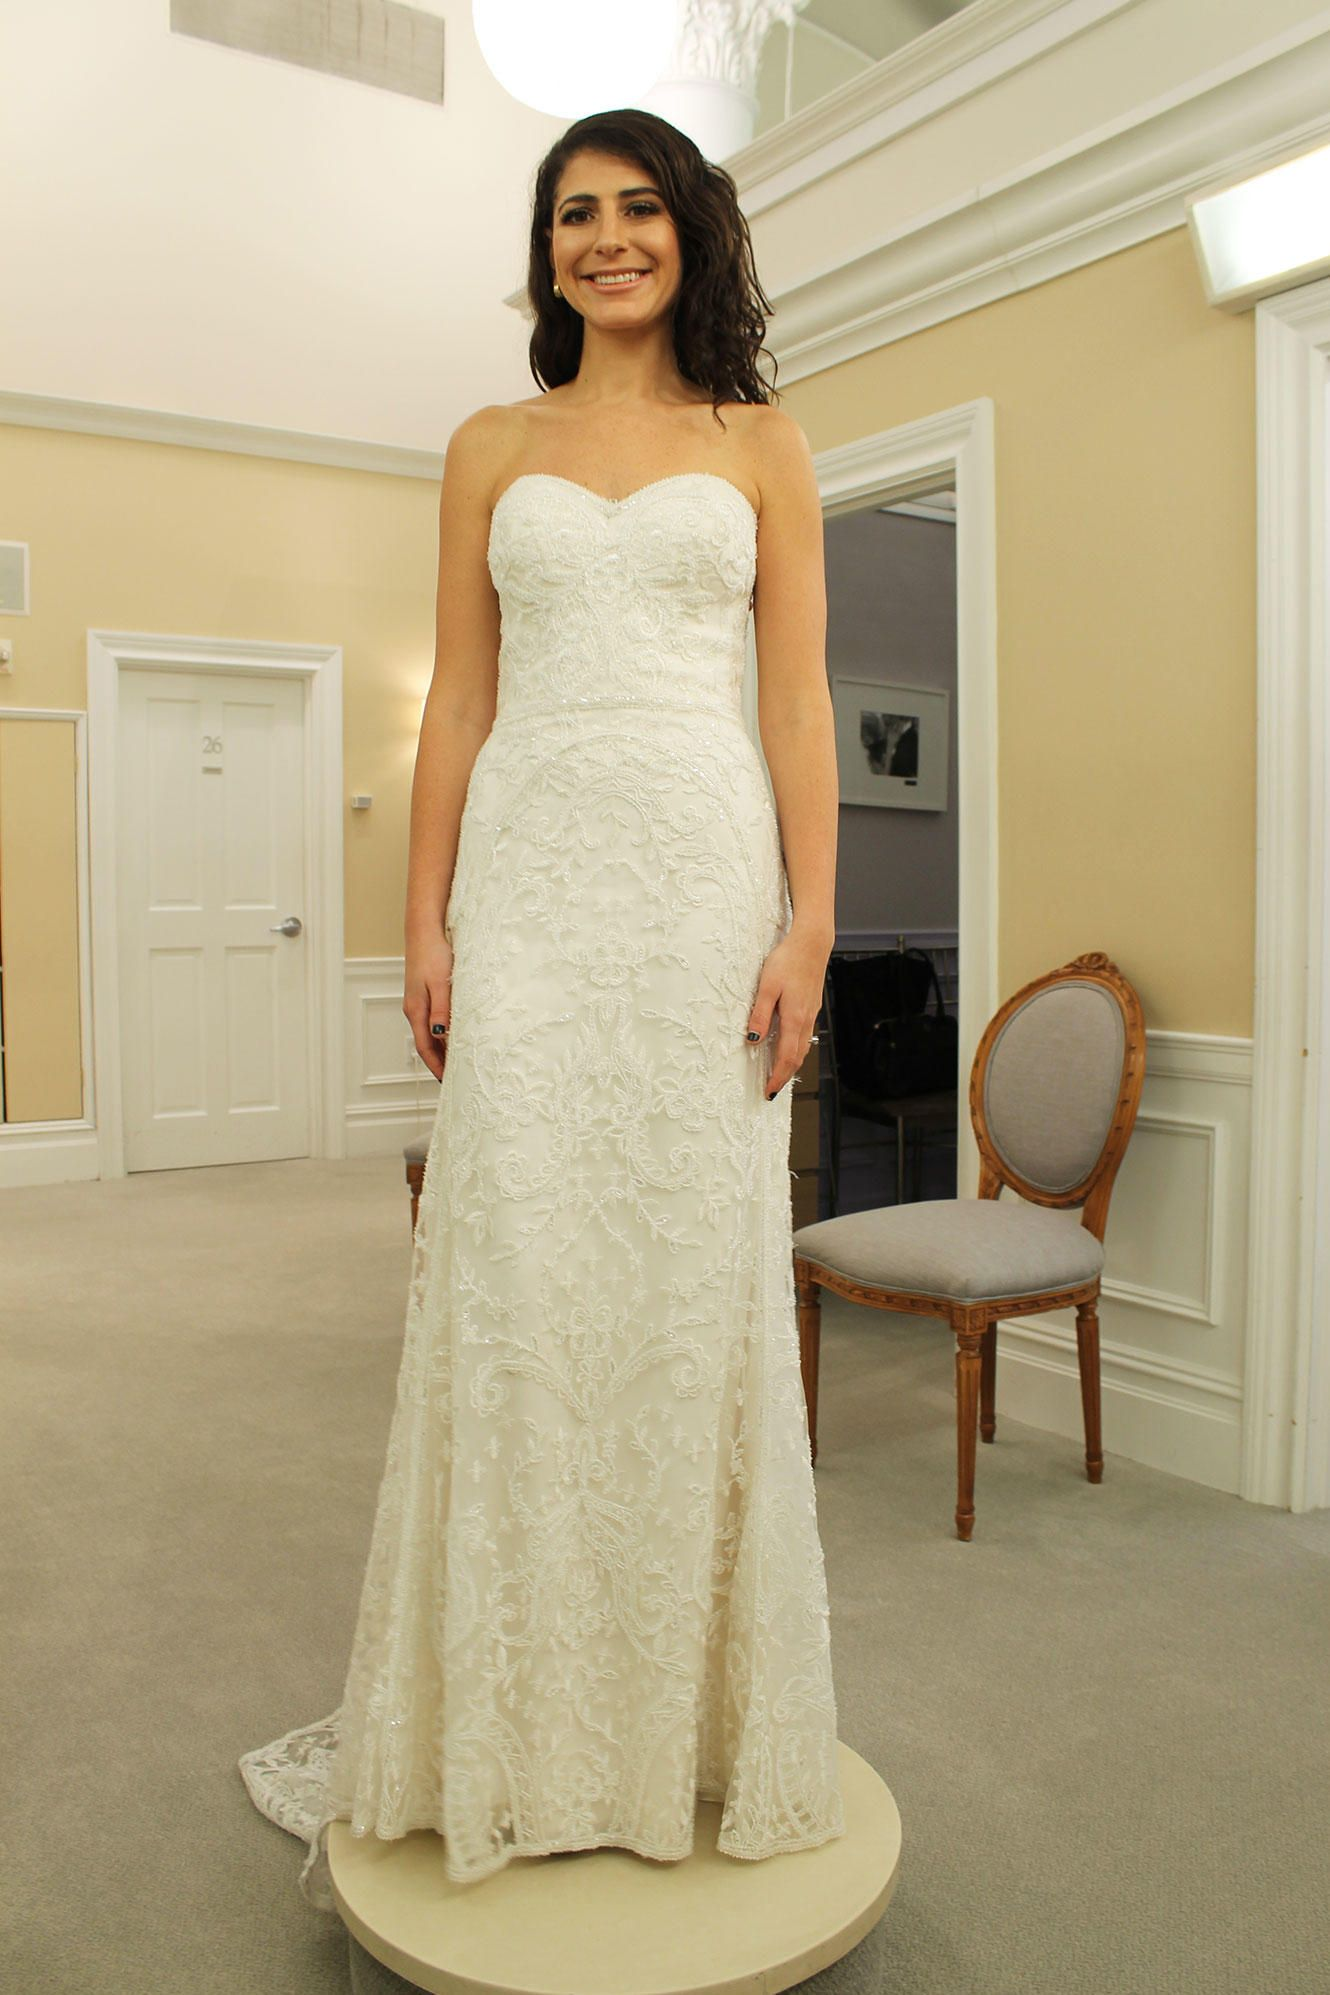 Strapless fitted lace wedding dresses  Say Yes to the Dress  Some Day My Prince Will Come  Pinterest